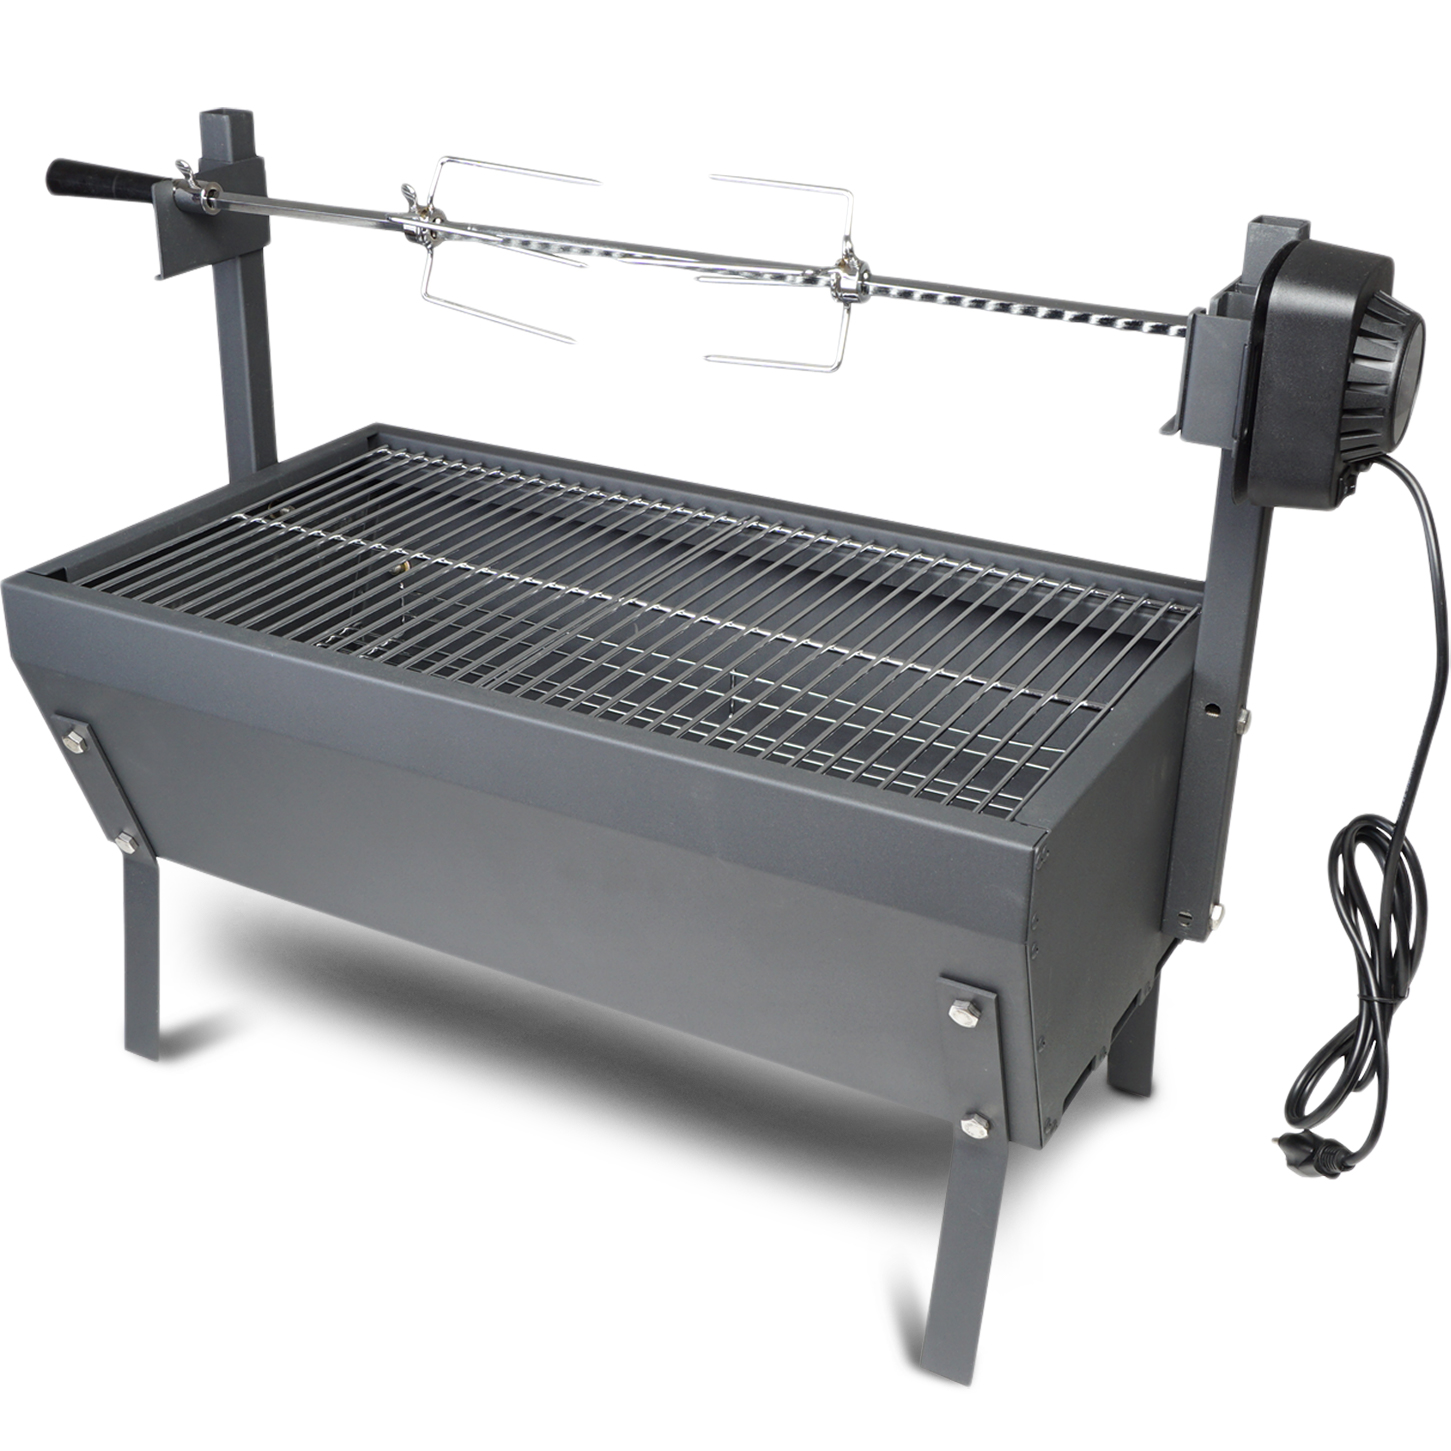 "Small Rotisserie Chicken Roaster Grill 28"" Spit Rod Stainless Steel Charcoal BBQ"